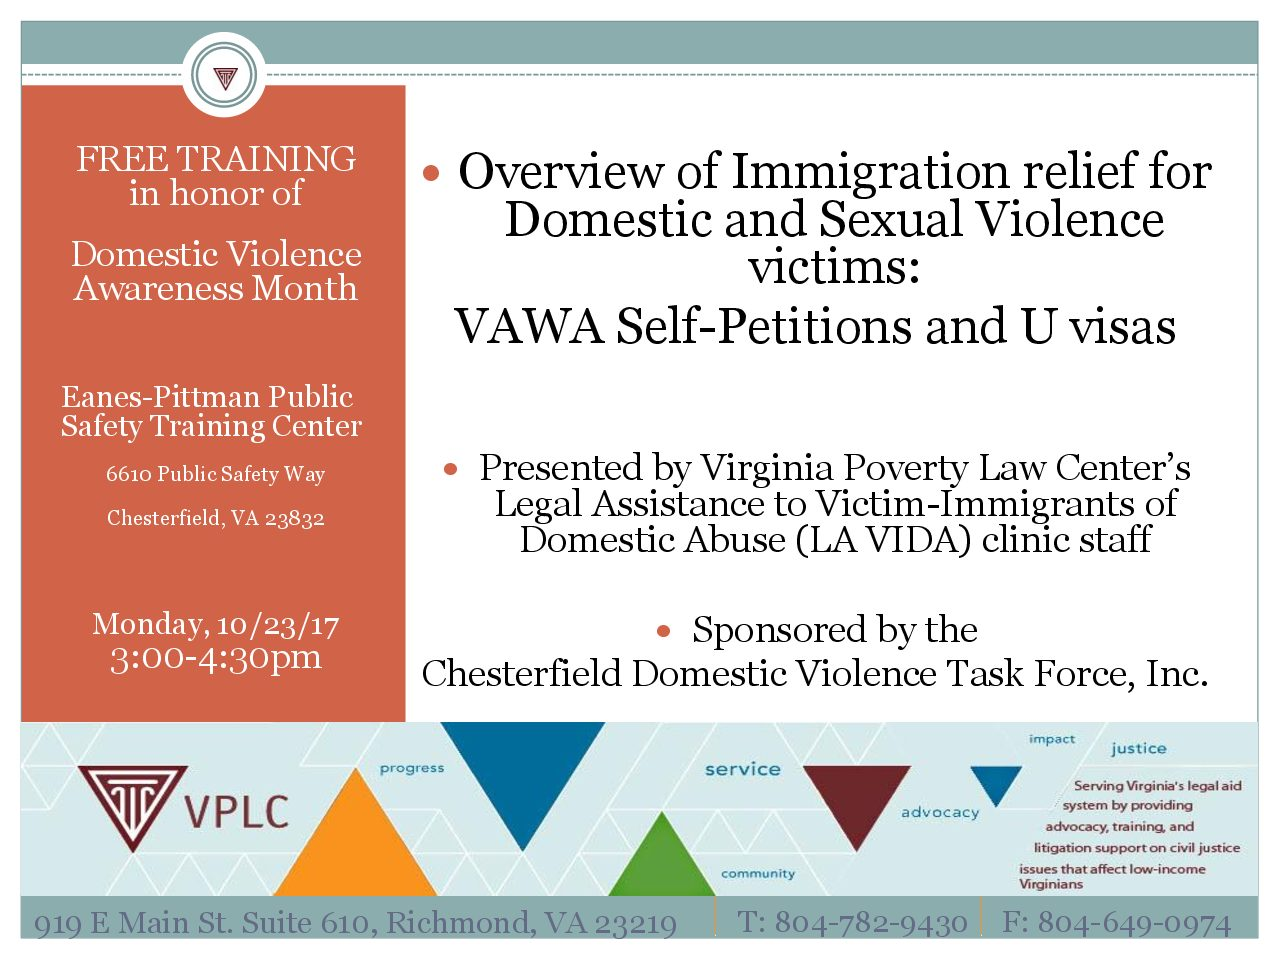 Free Training on Immigration Relief for Victims of Domestic of Sexual Violence